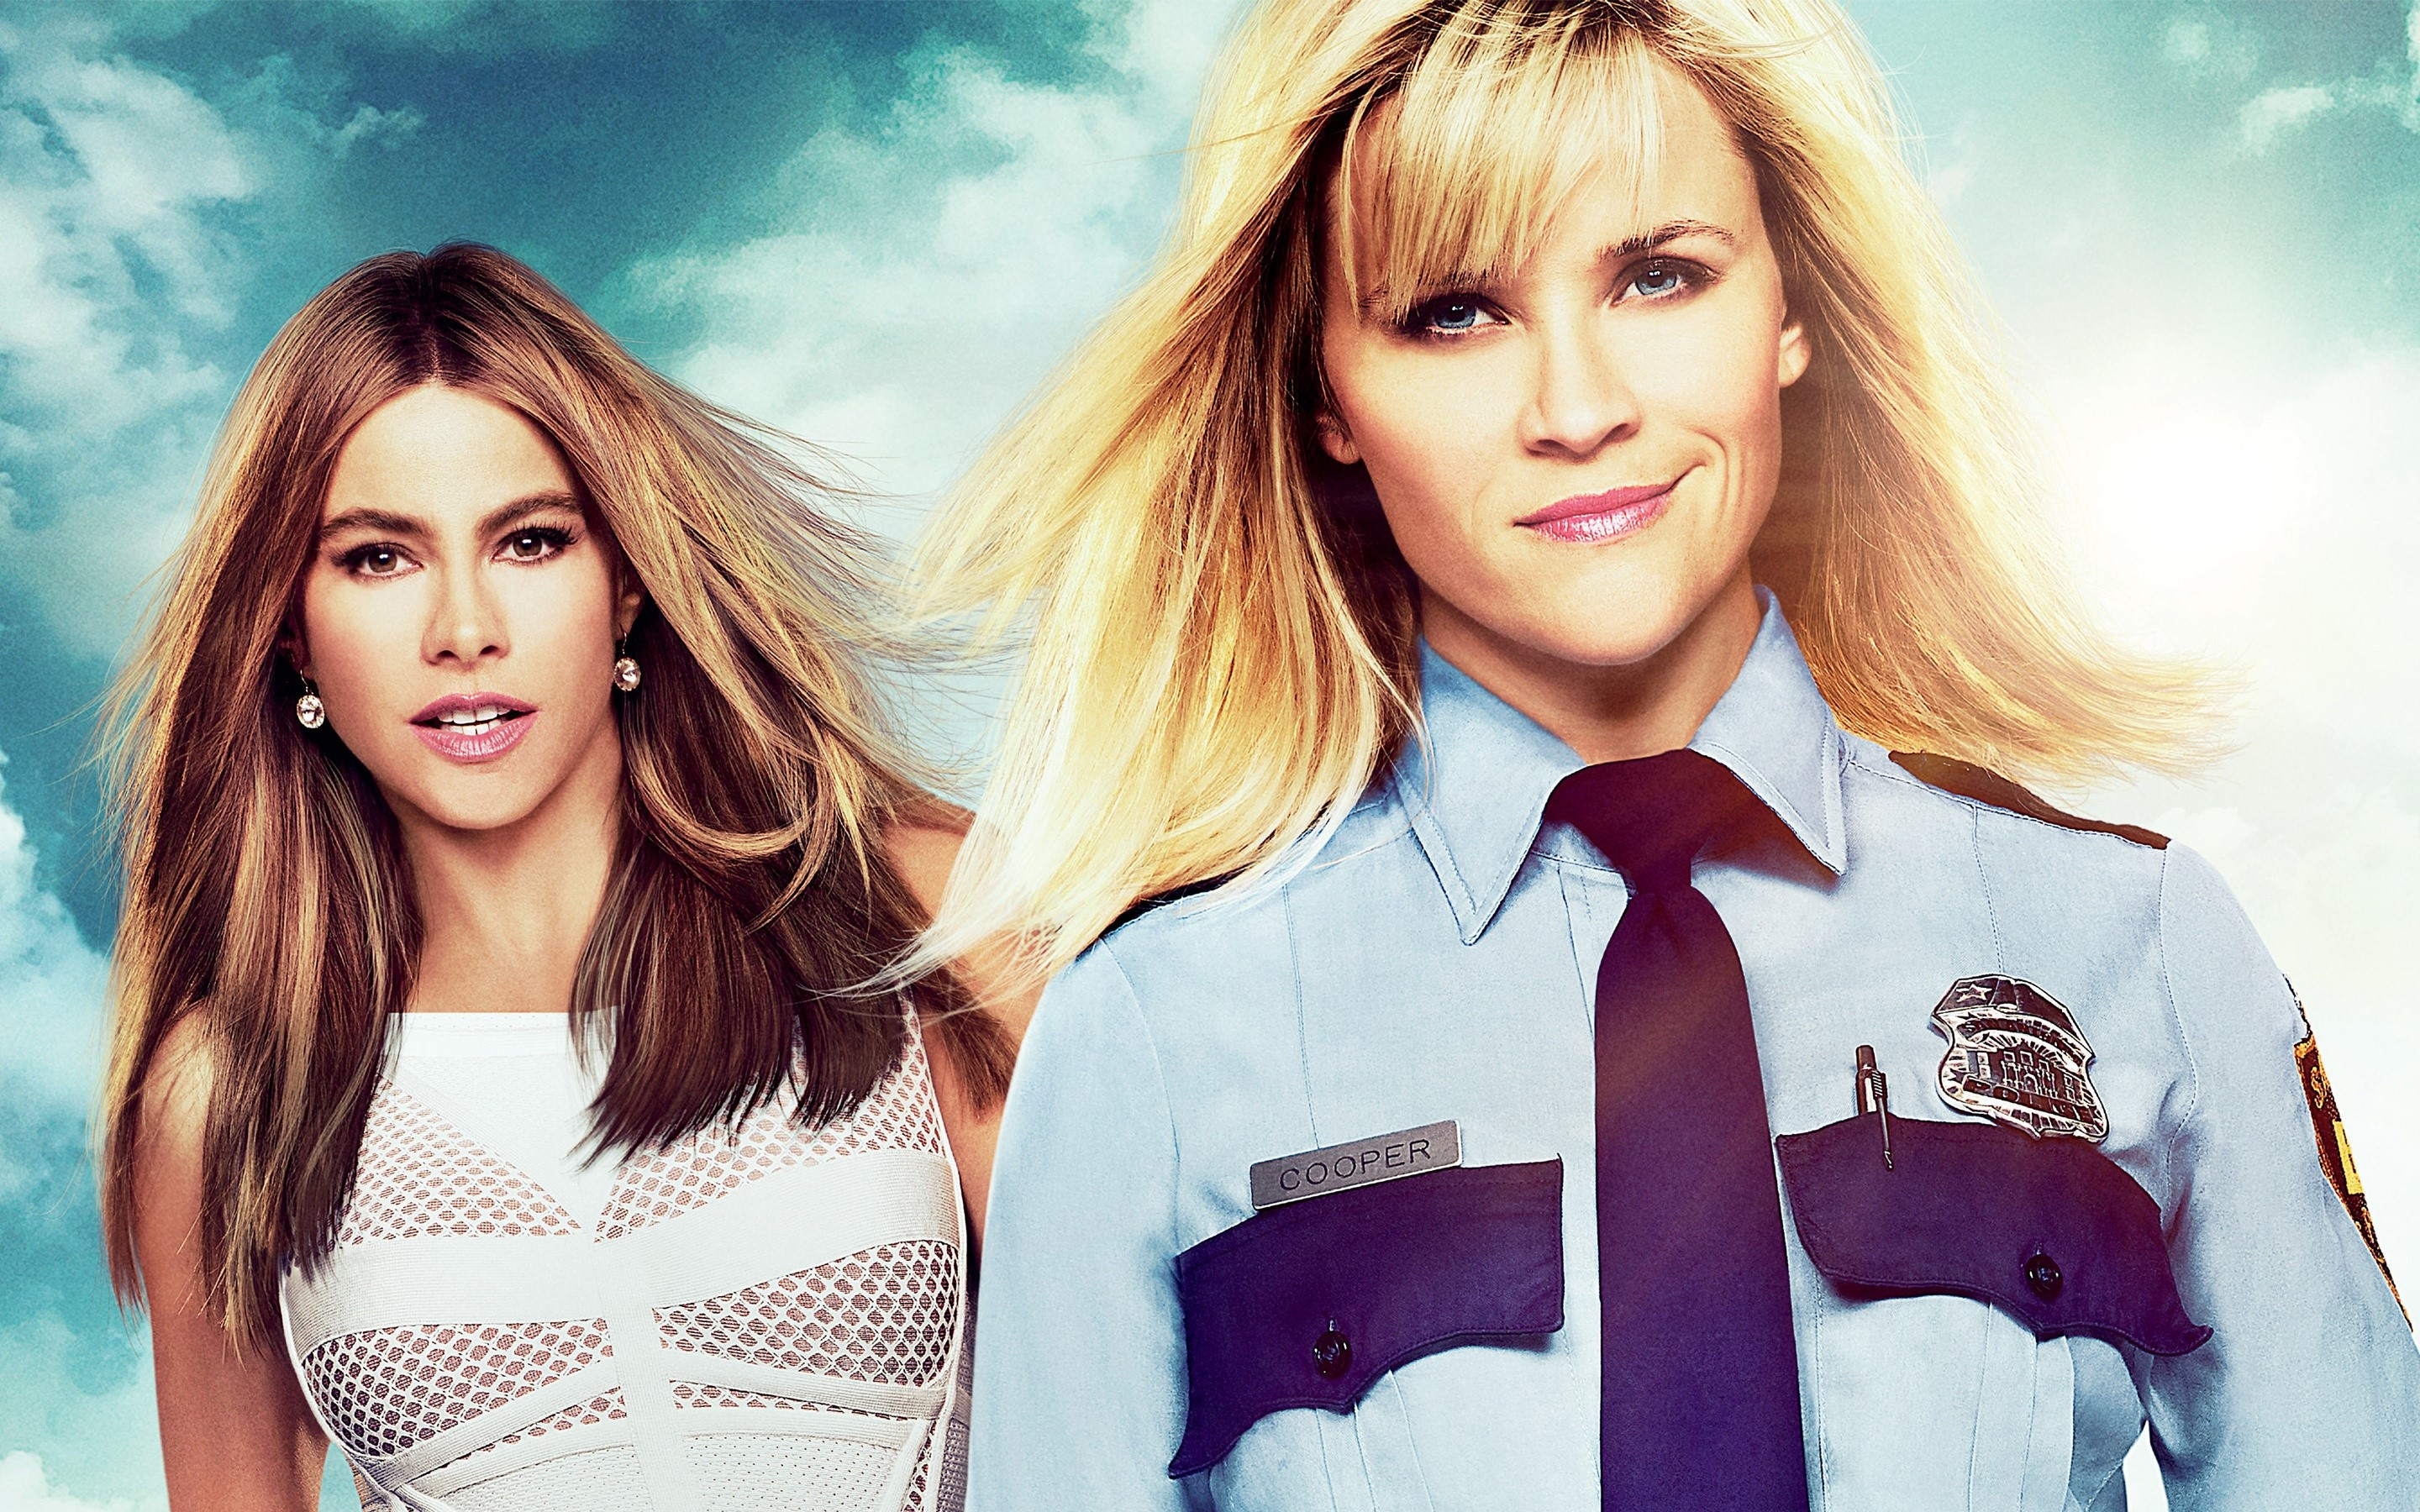 Fondos de pantalla Sofia Vergara y Reese Witherspoon en Hot Pursuit